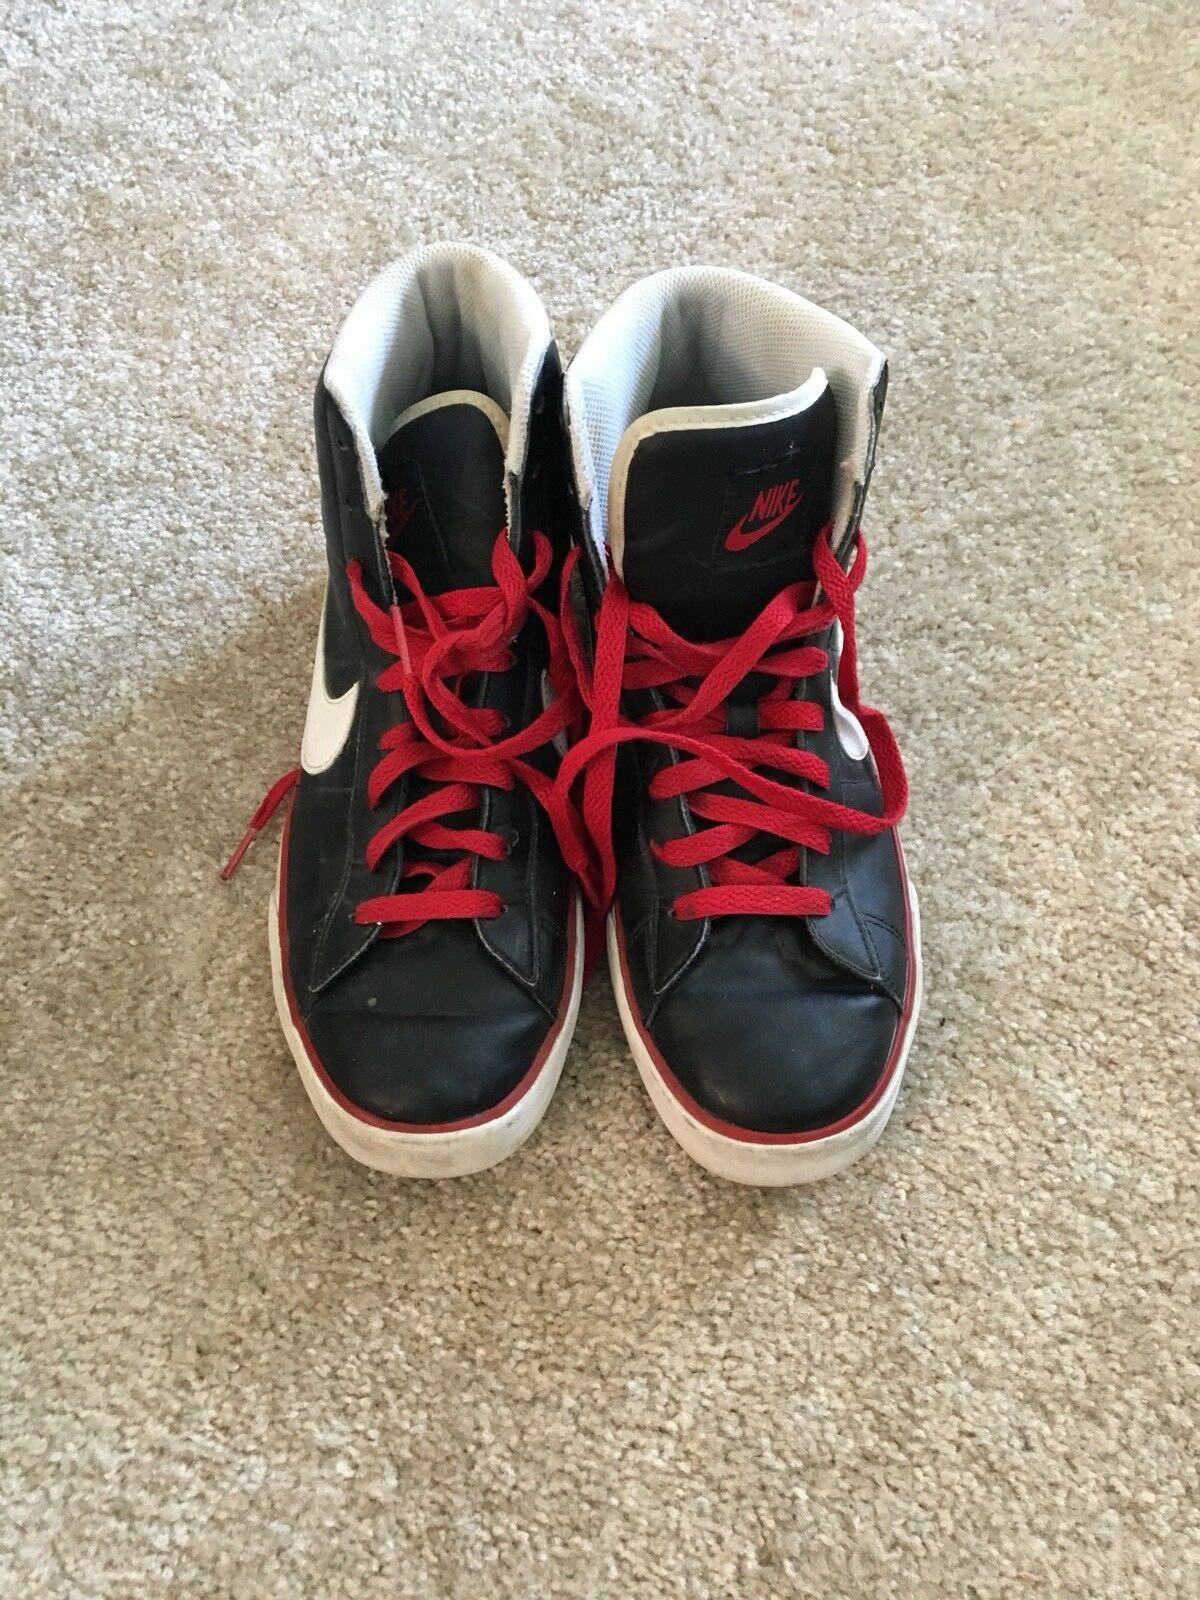 Nike High Men's Basketball Shoes Comfortable  New shoes for men and women, limited time discount